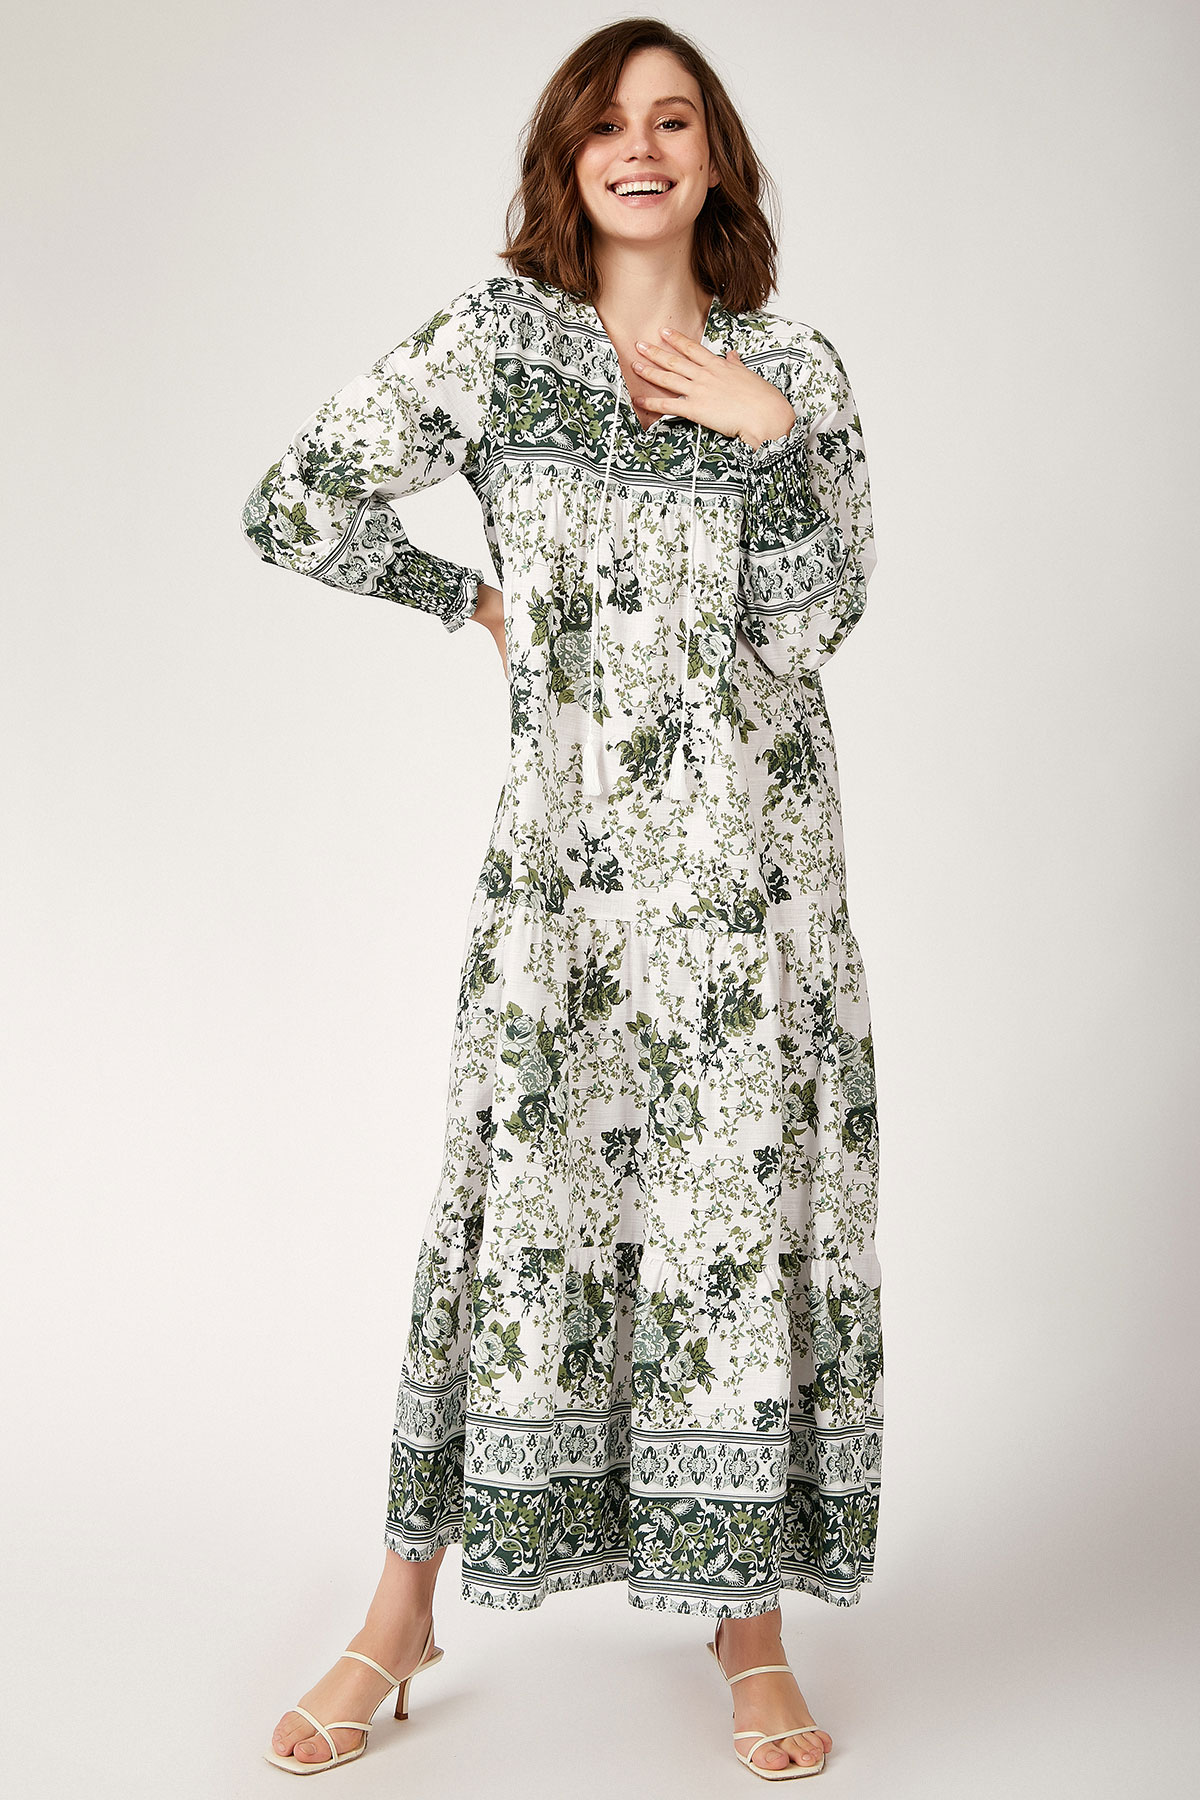 Women's Shirred Sleeves Floral Pattern Linen Midi Dress